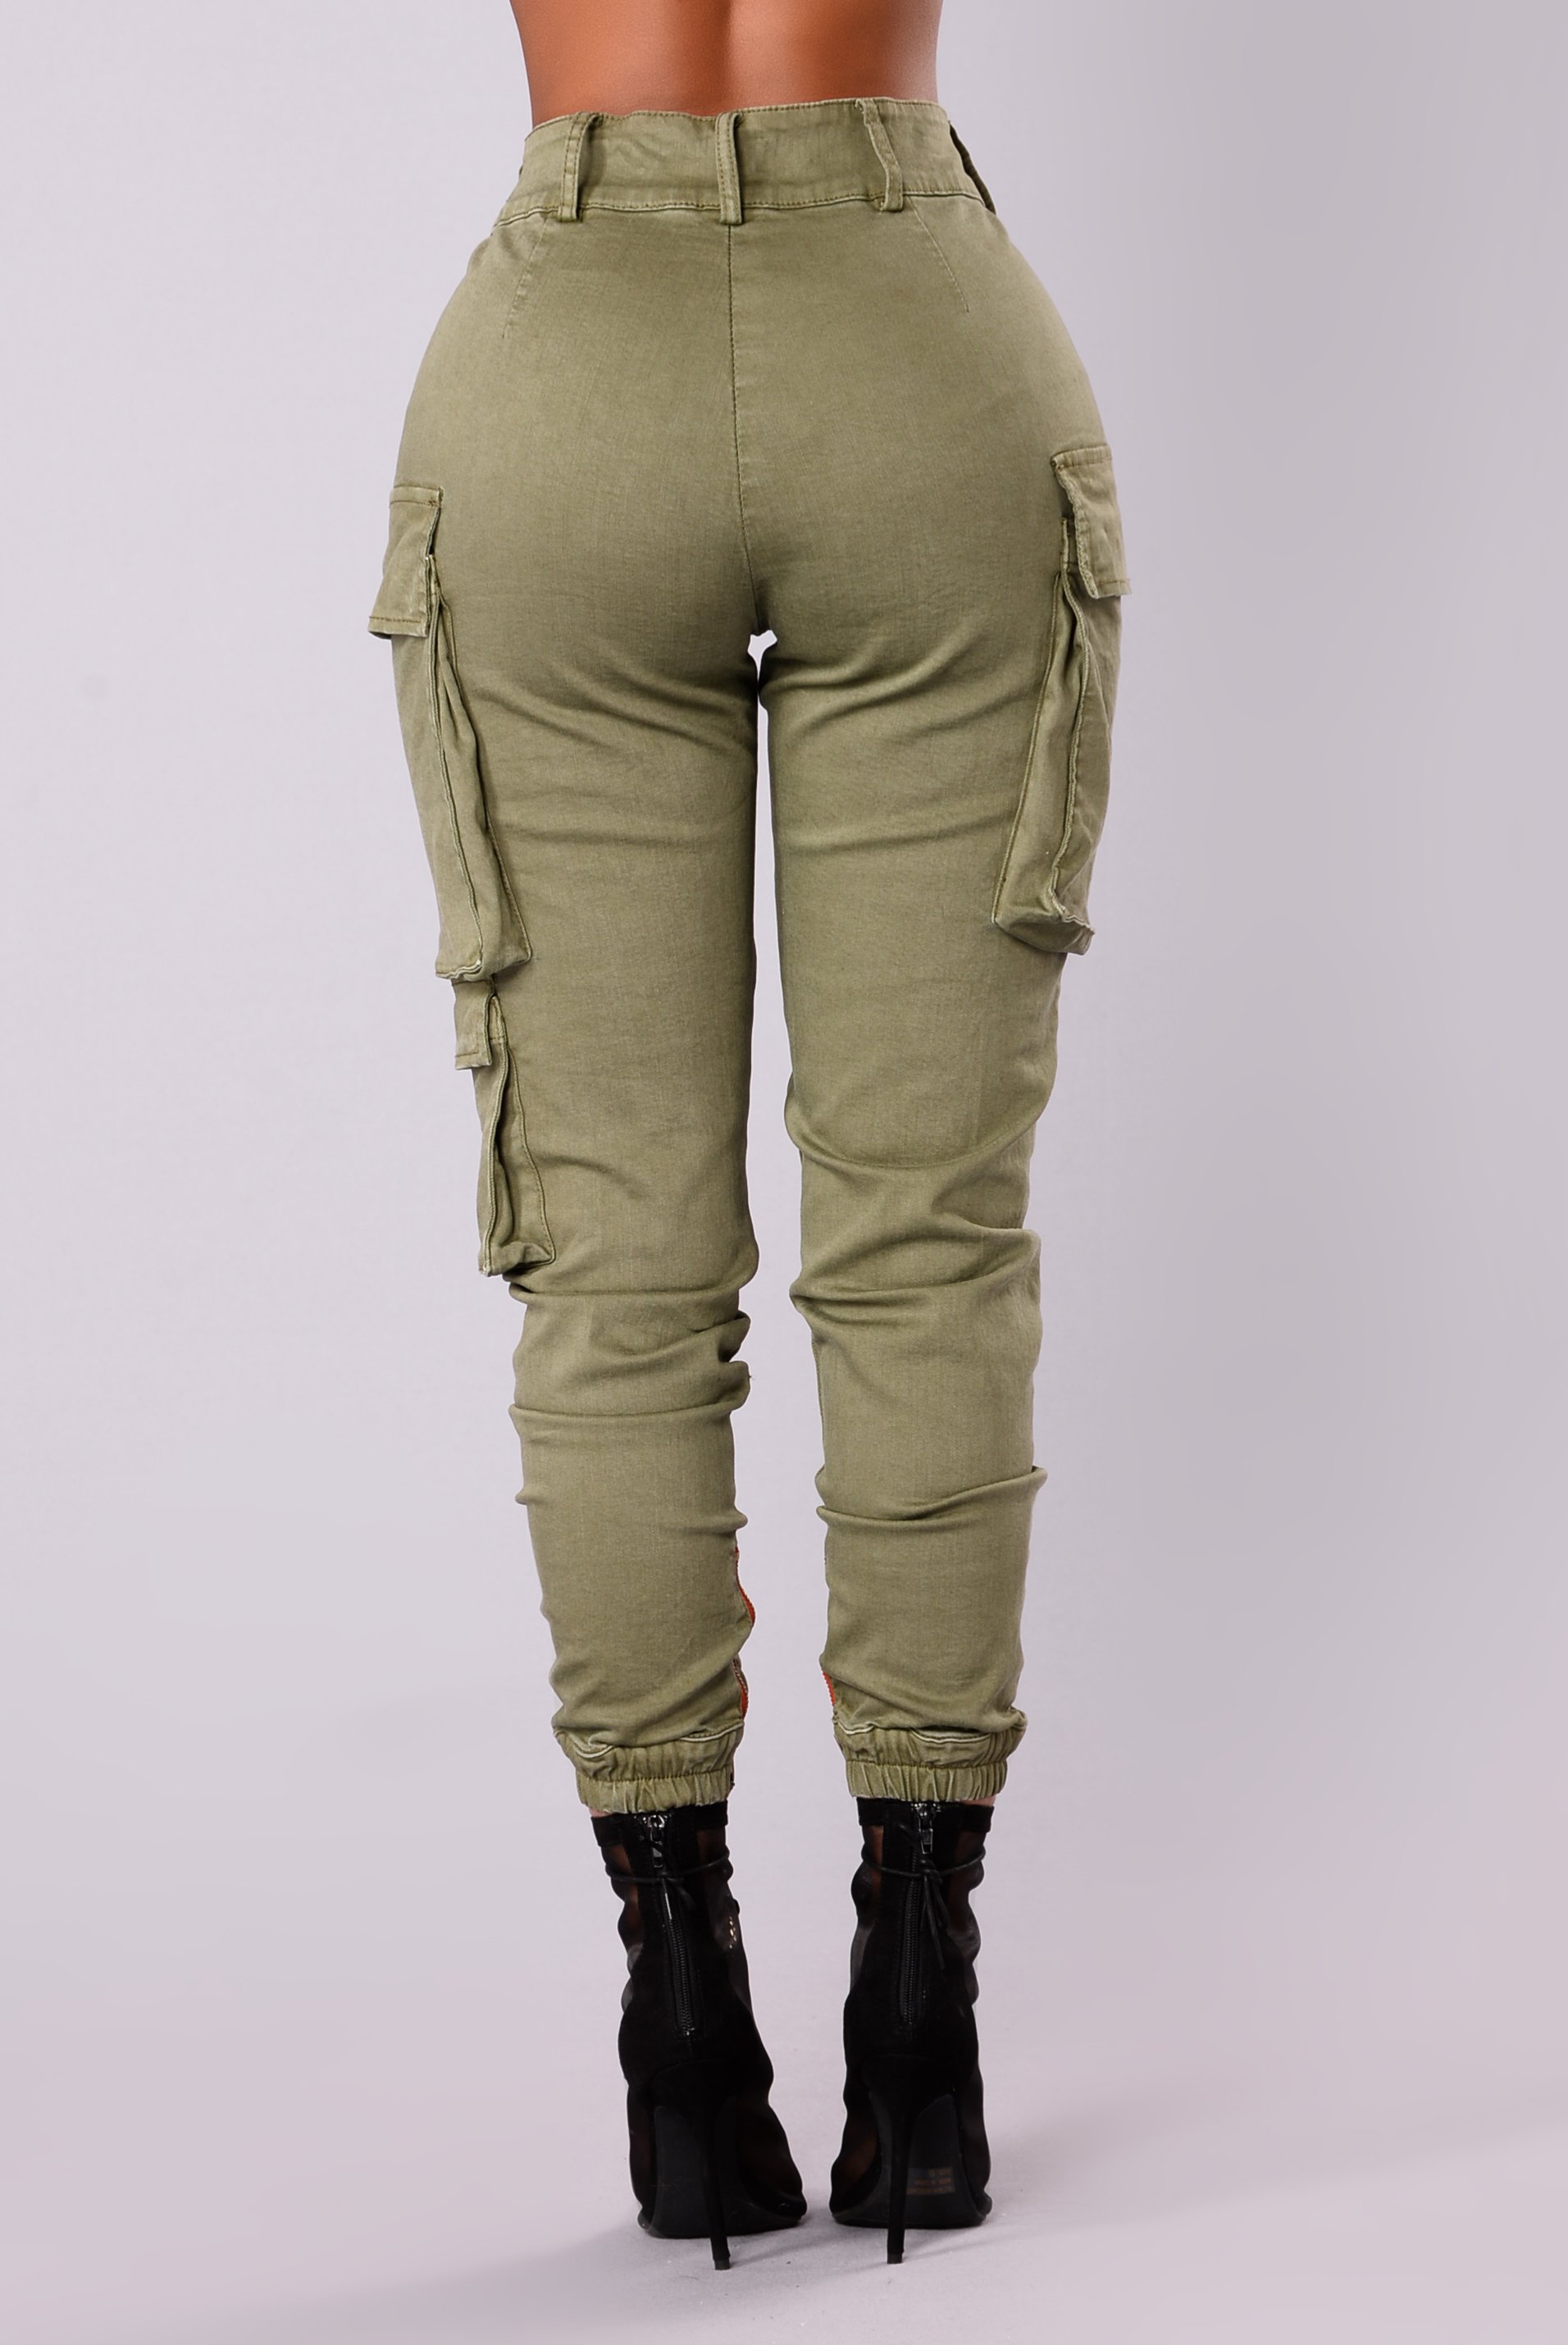 kalley cargo pants - olive ptnobsx